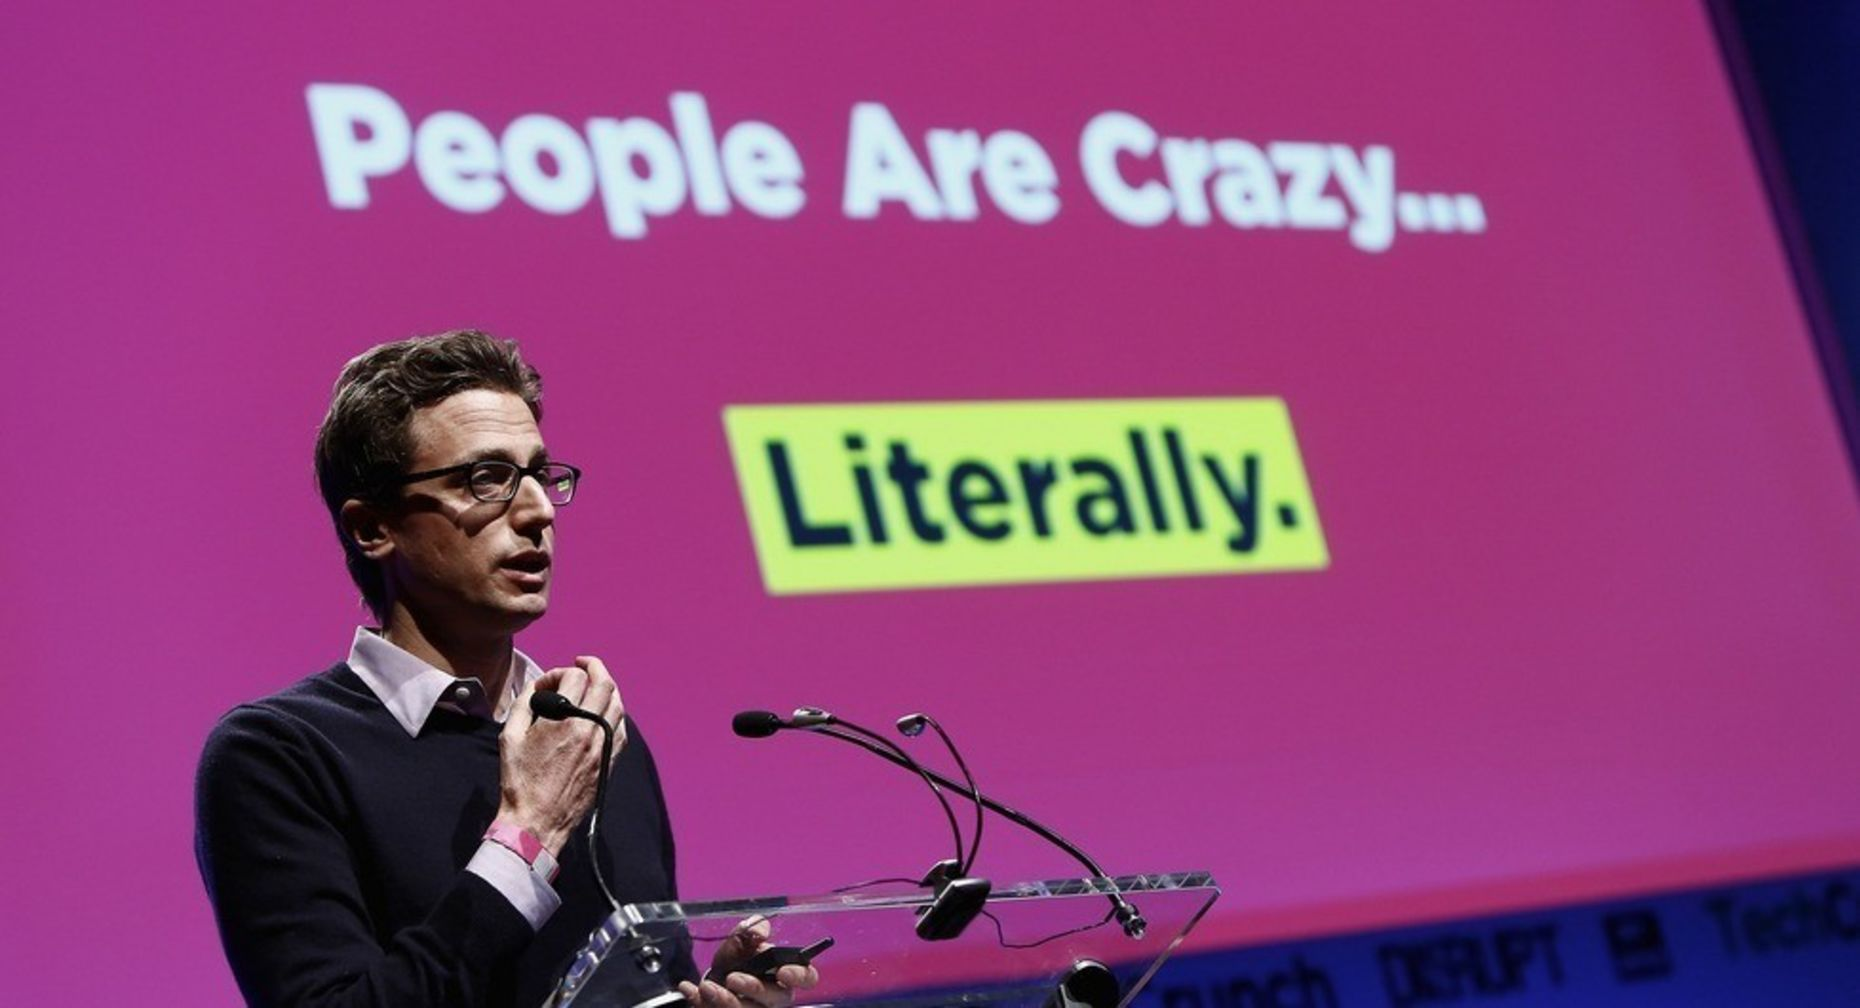 BuzzFeed CEO Jonah Peretti. Photo by TechCrunch.